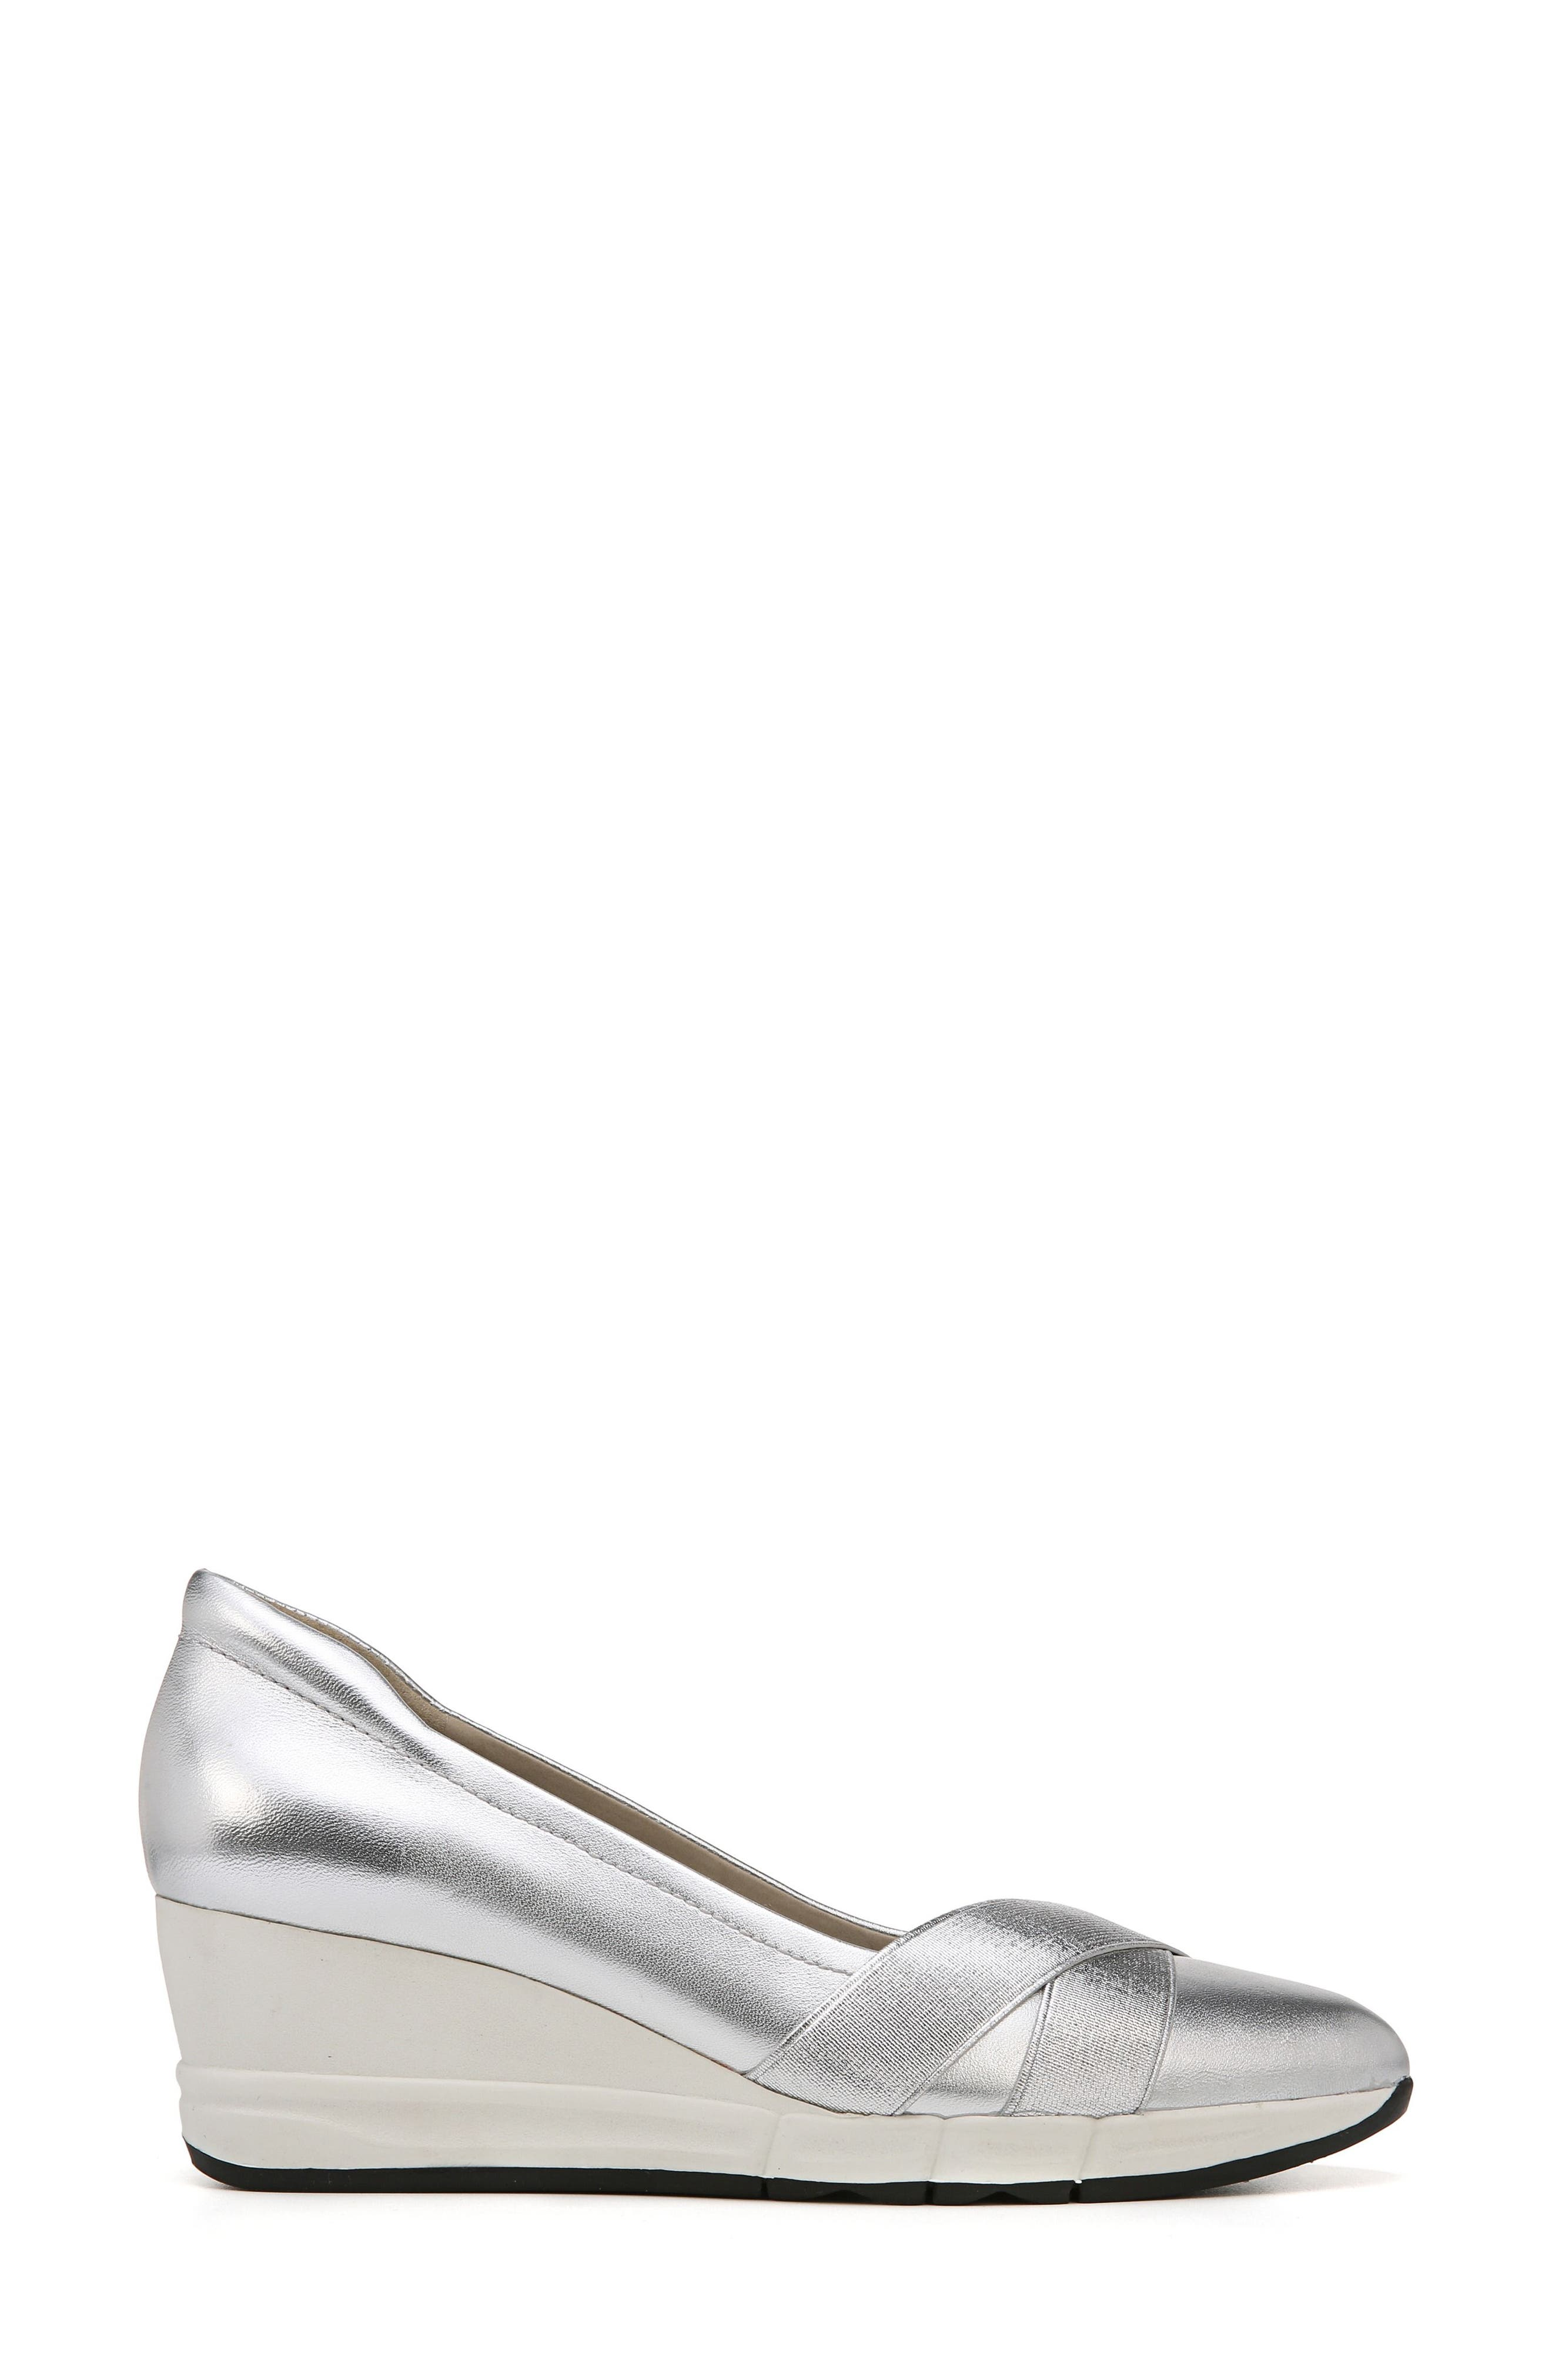 Harlyn Wedge Pump,                             Alternate thumbnail 3, color,                             Silver Leather